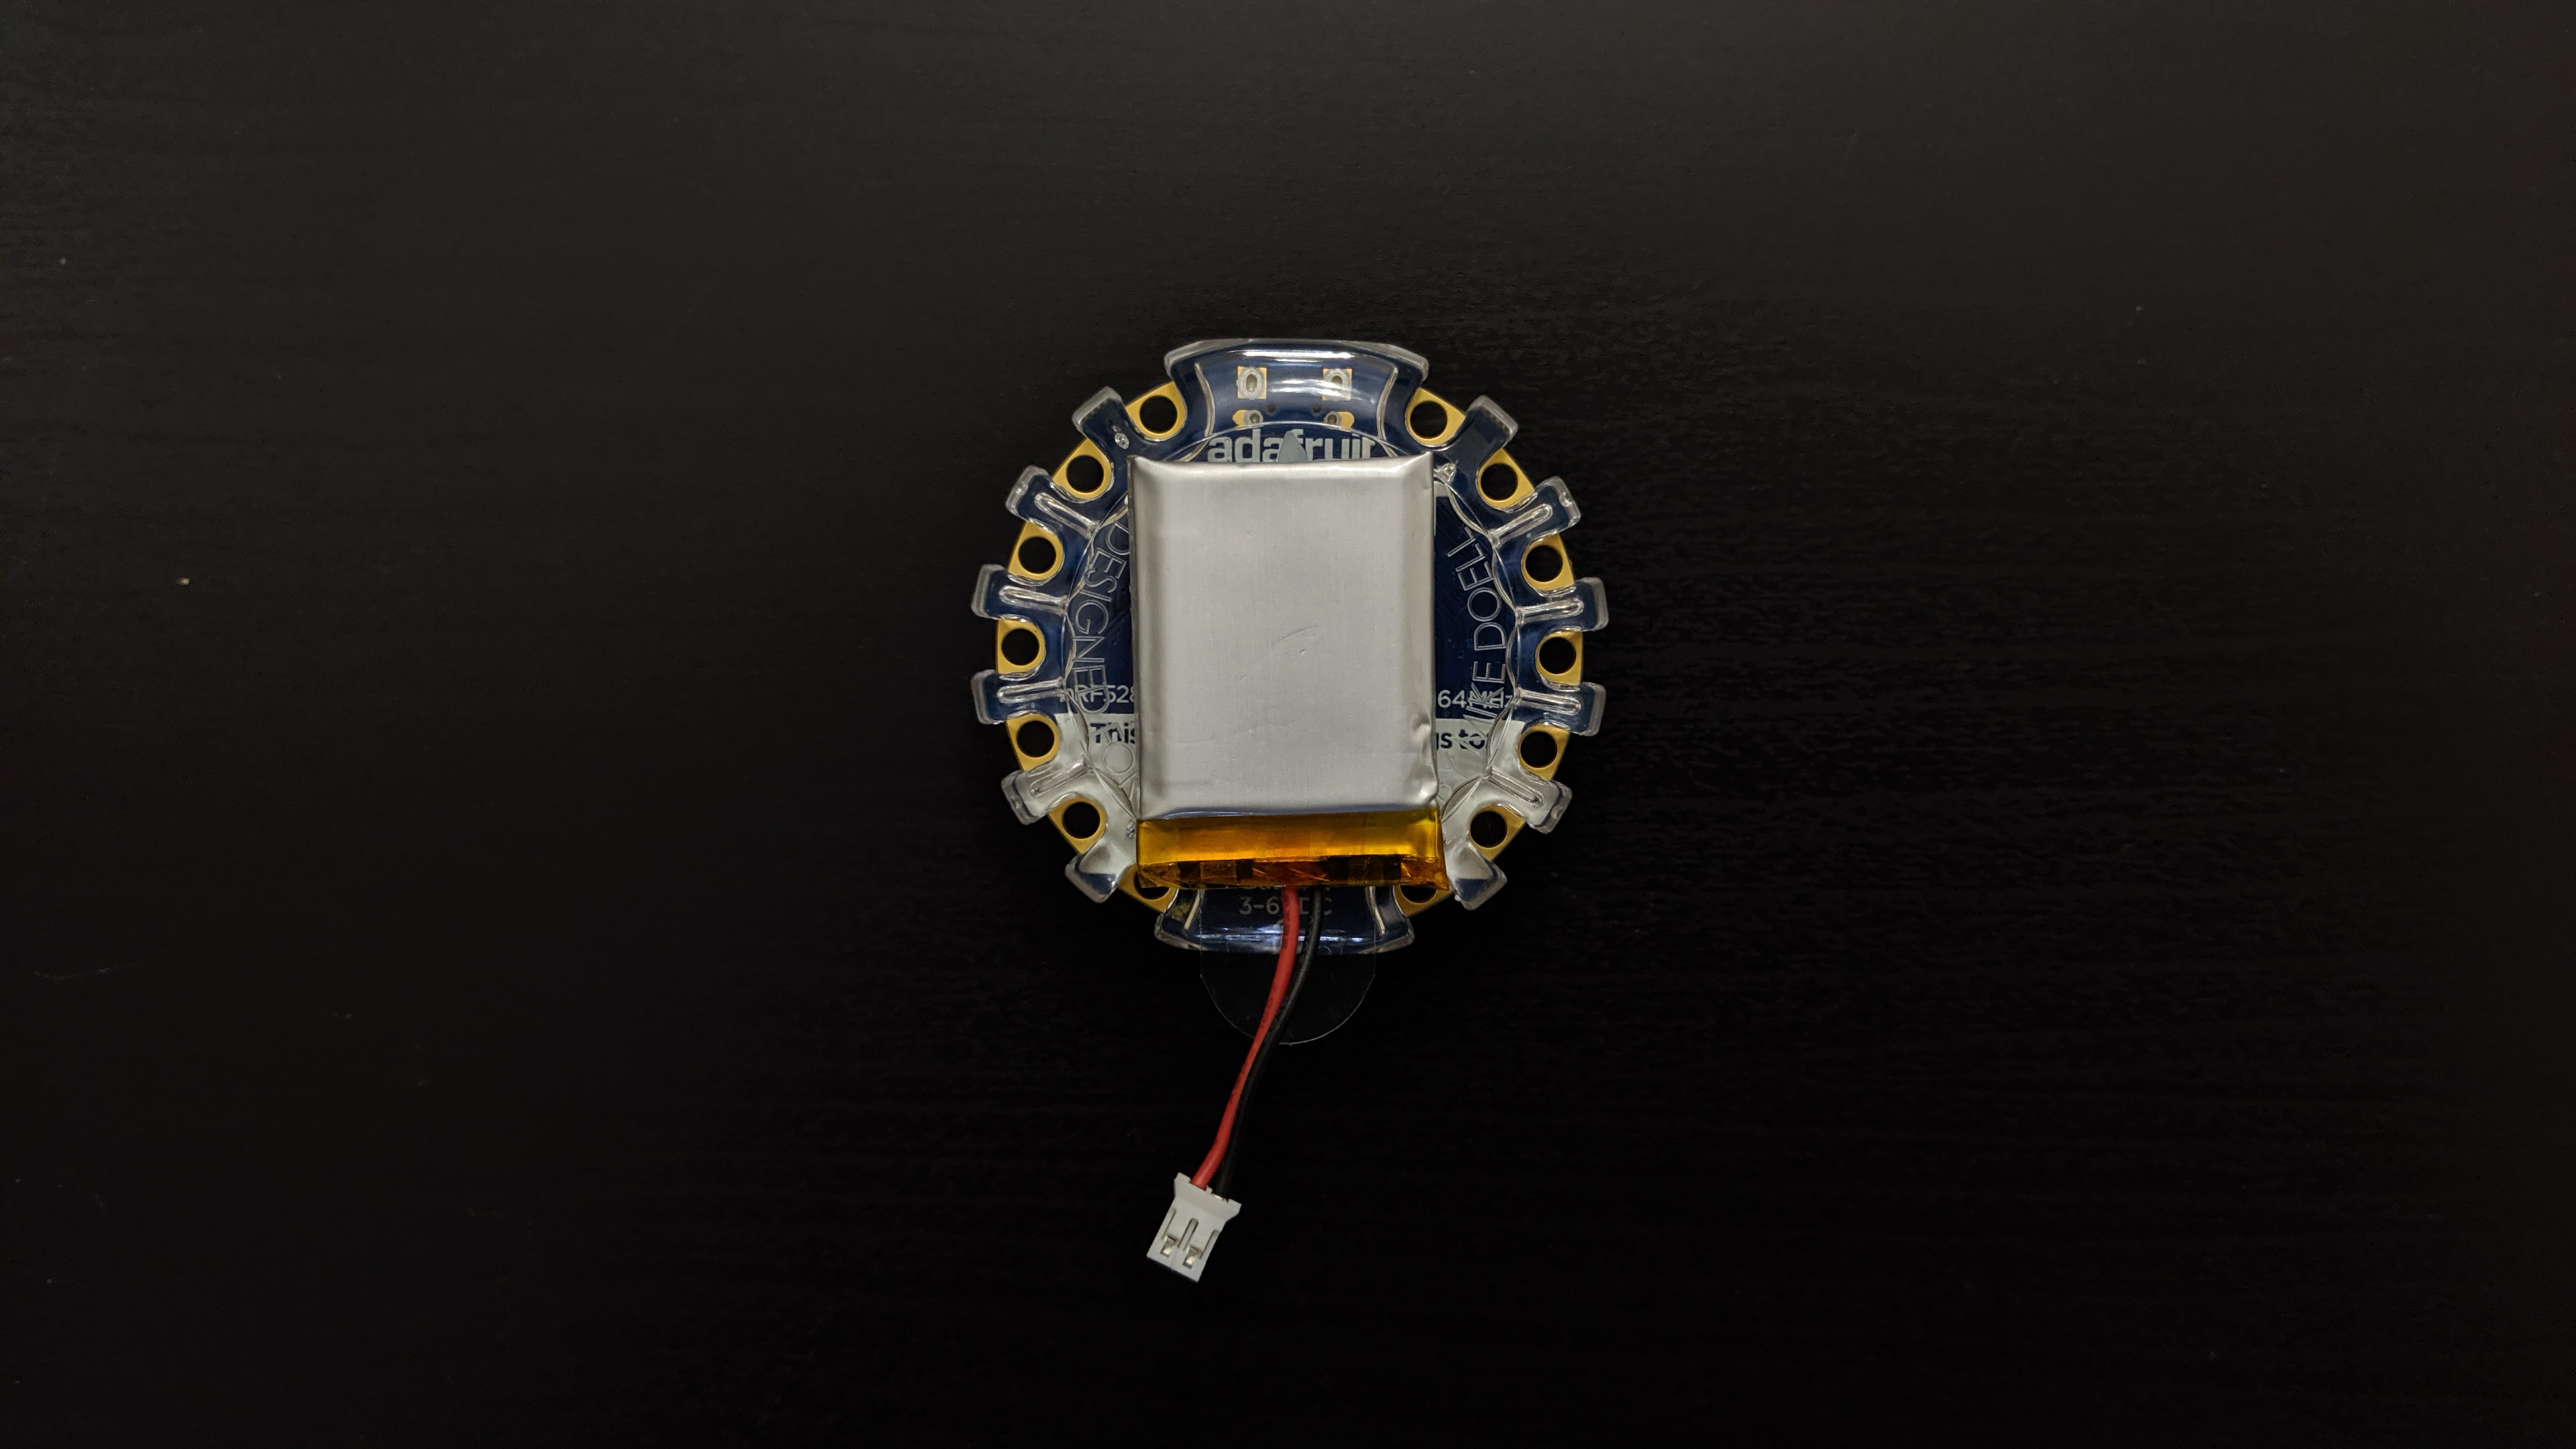 leds_CPB_NeoPIxel_Controller_battery_taped_to_enclosure.jpg